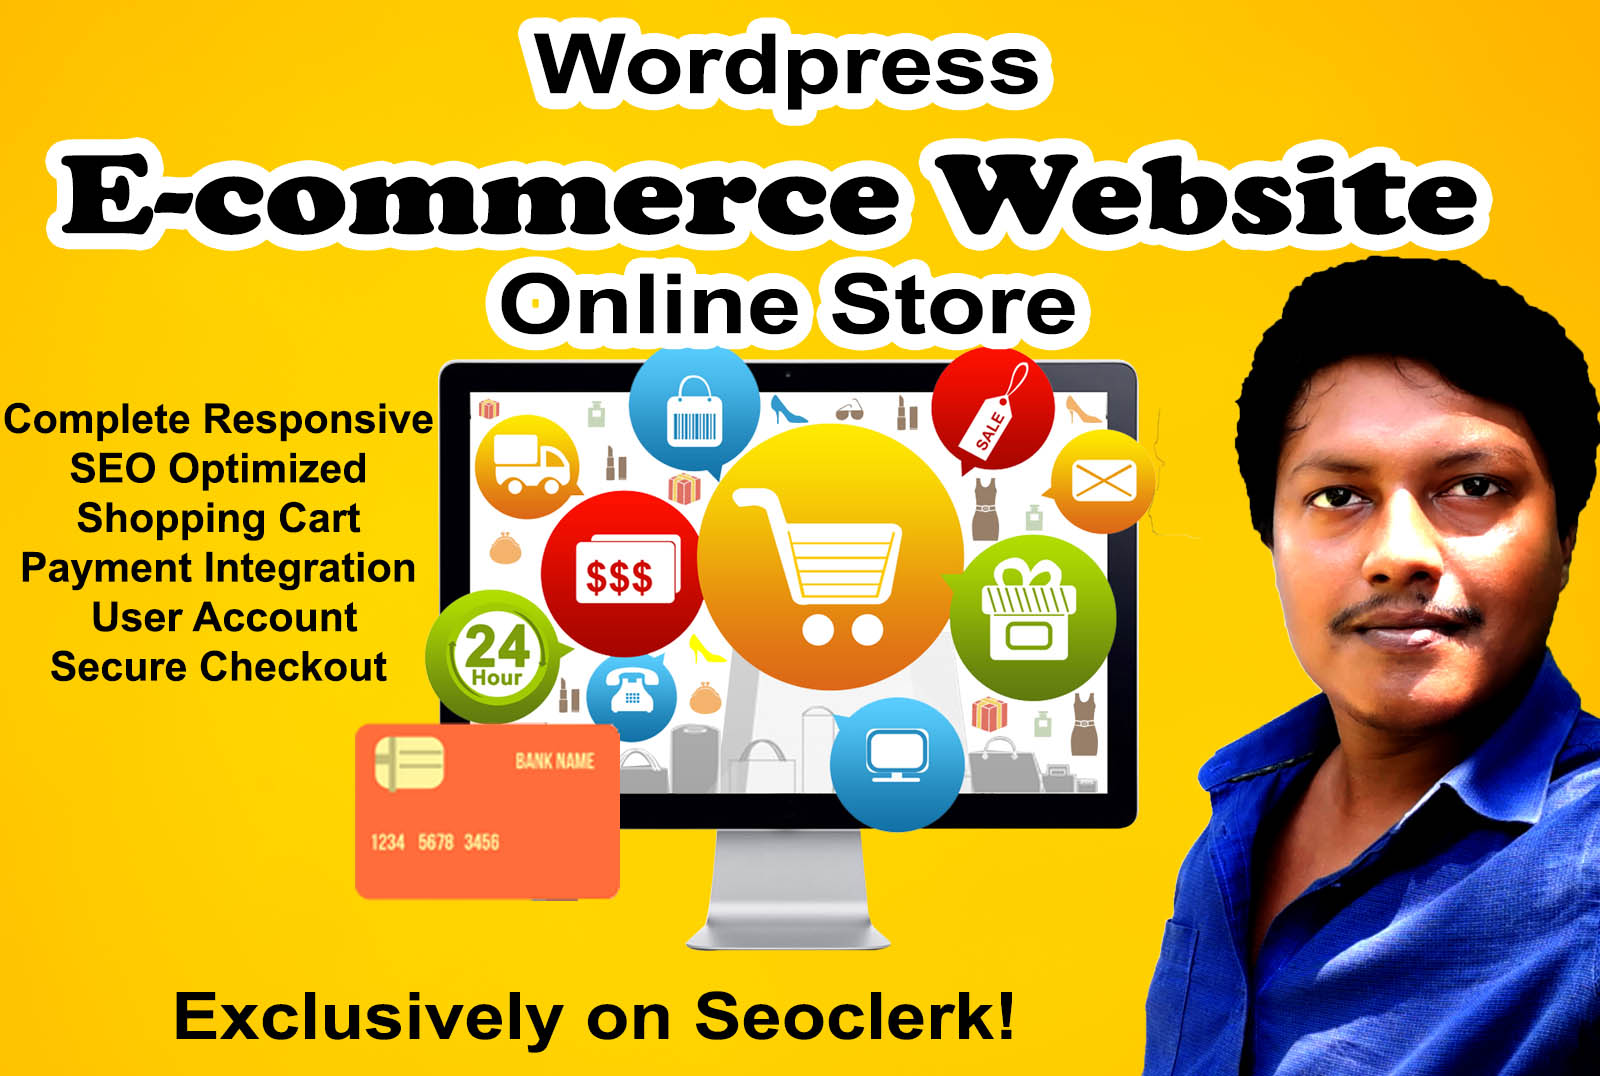 I will create wordpress woocommerce website and ecommerce website